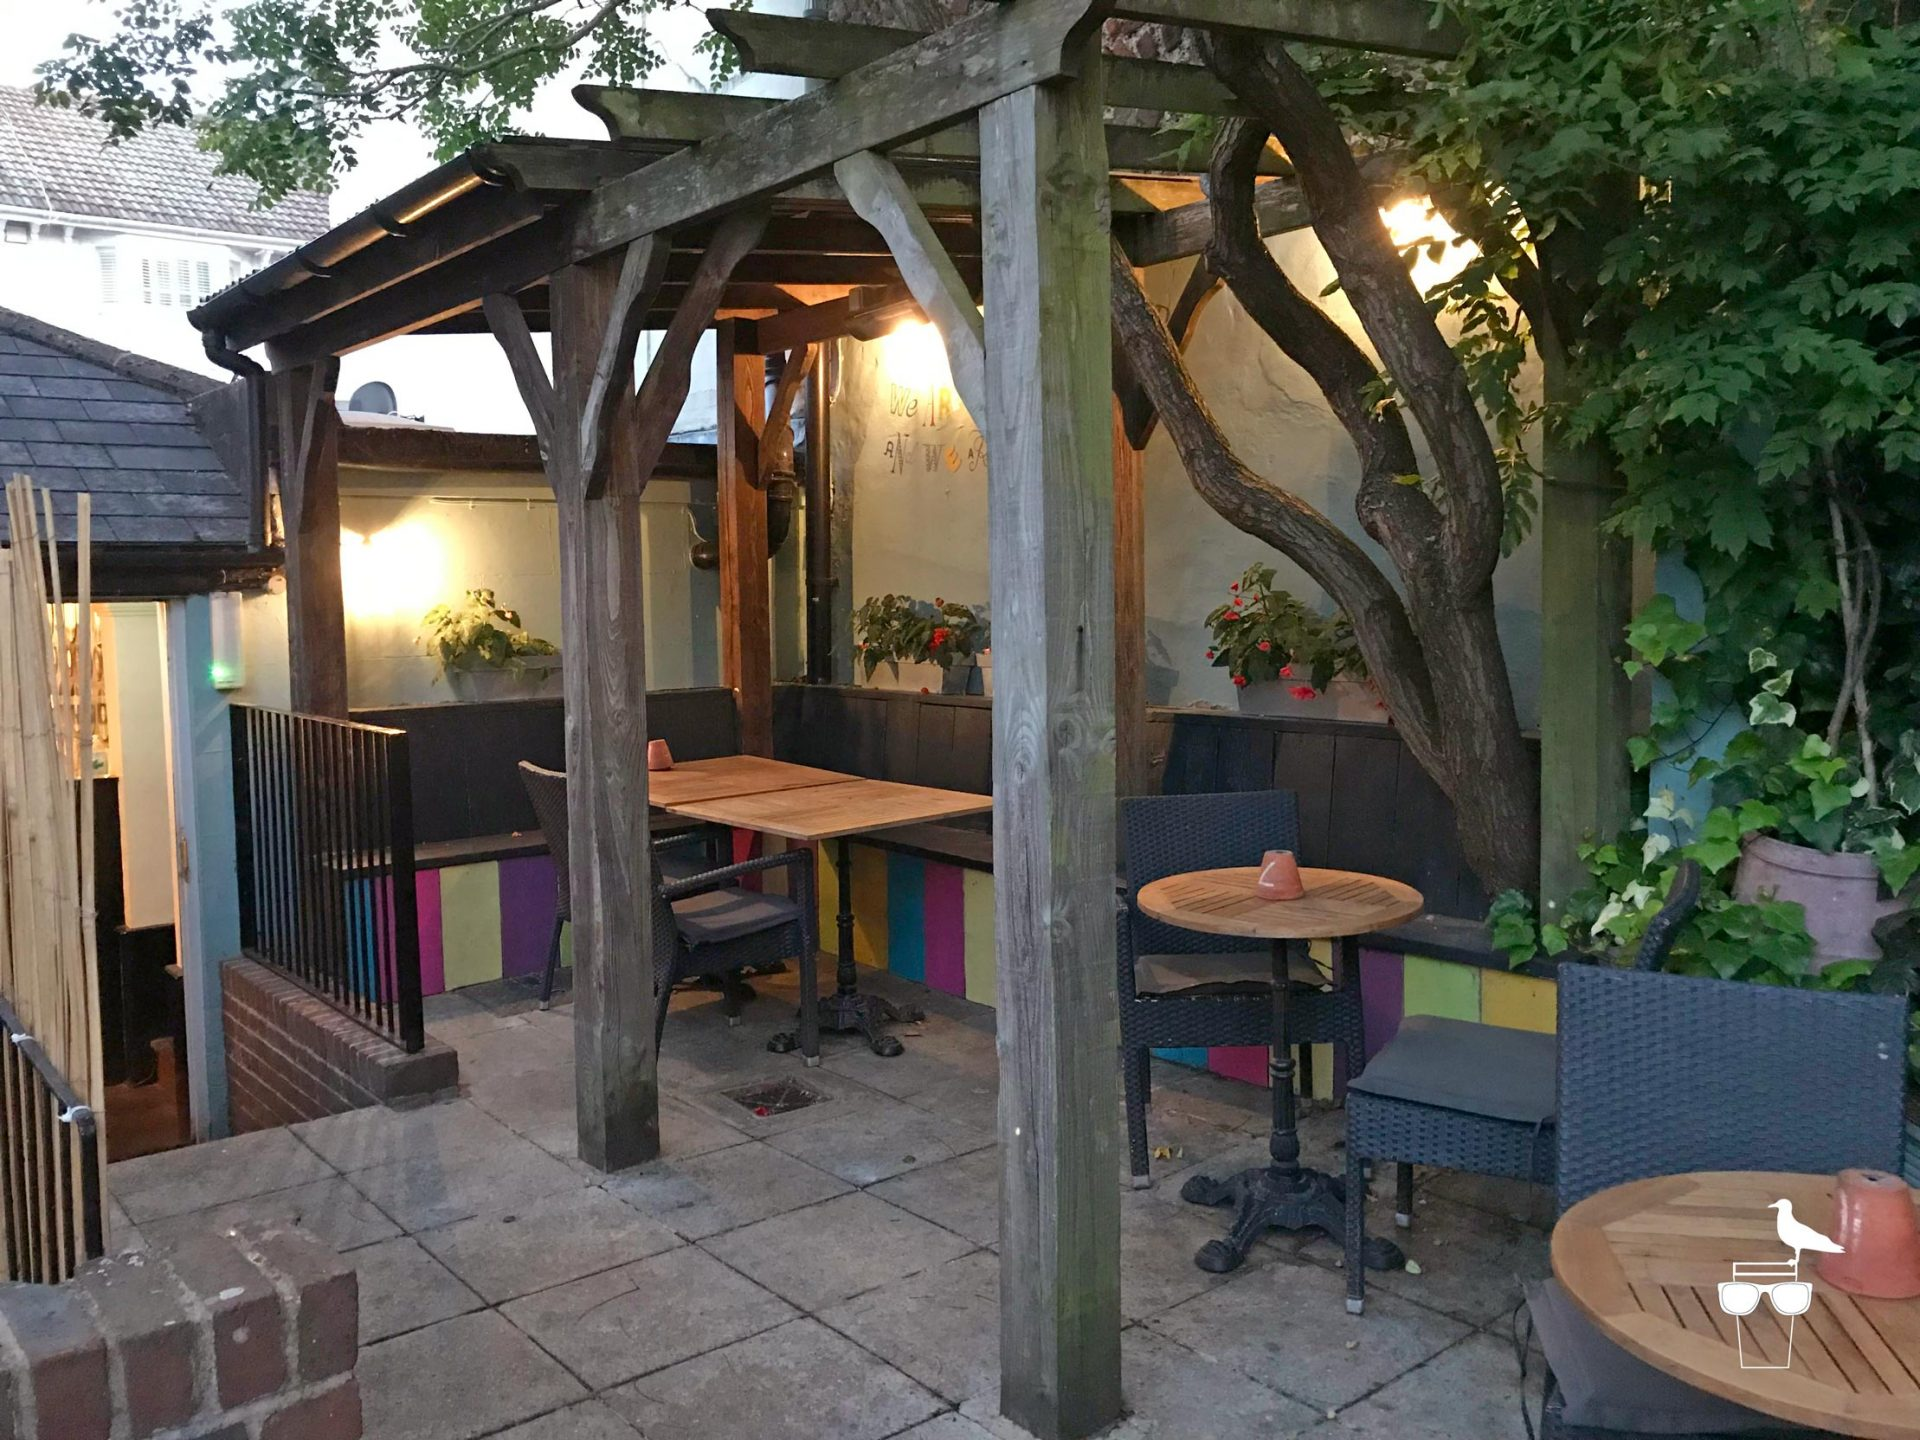 the-prestonville-arms-pub-brighton-garden-covered-seating